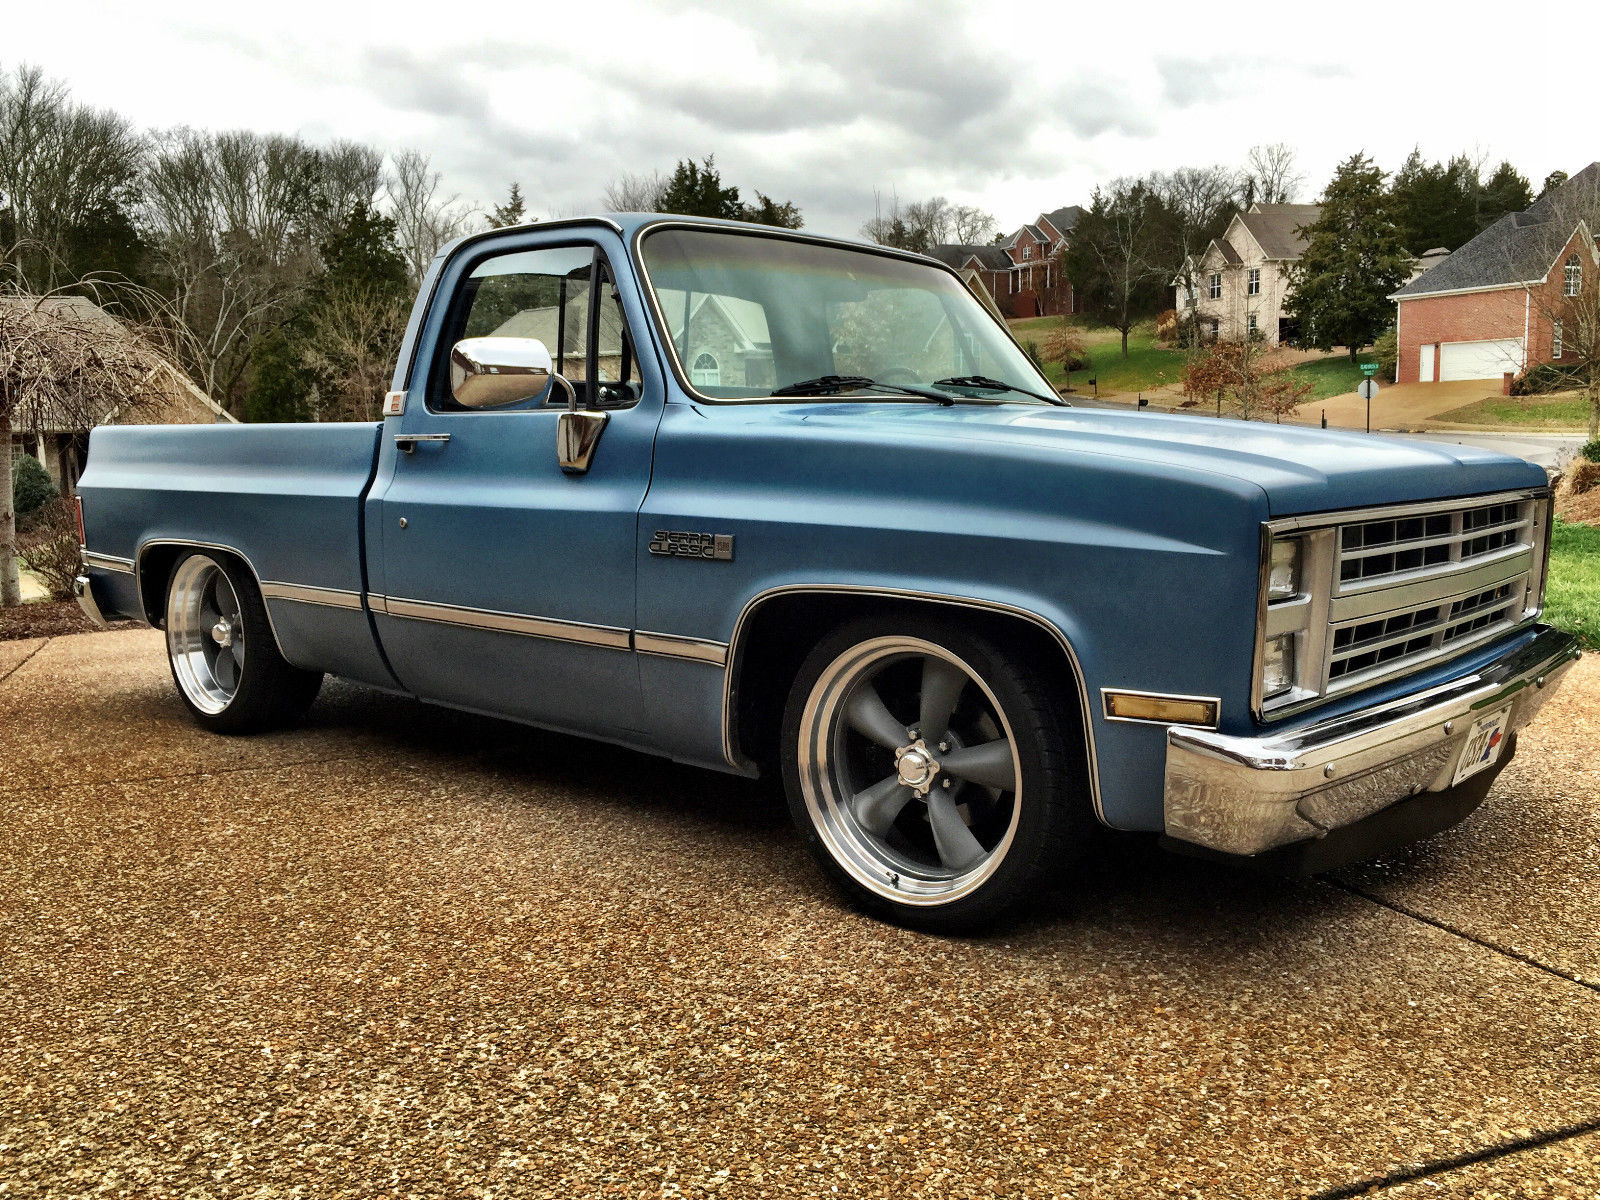 1986 Gmc Sierra Chevy C10 Short Bed Shop Truck For Sale In